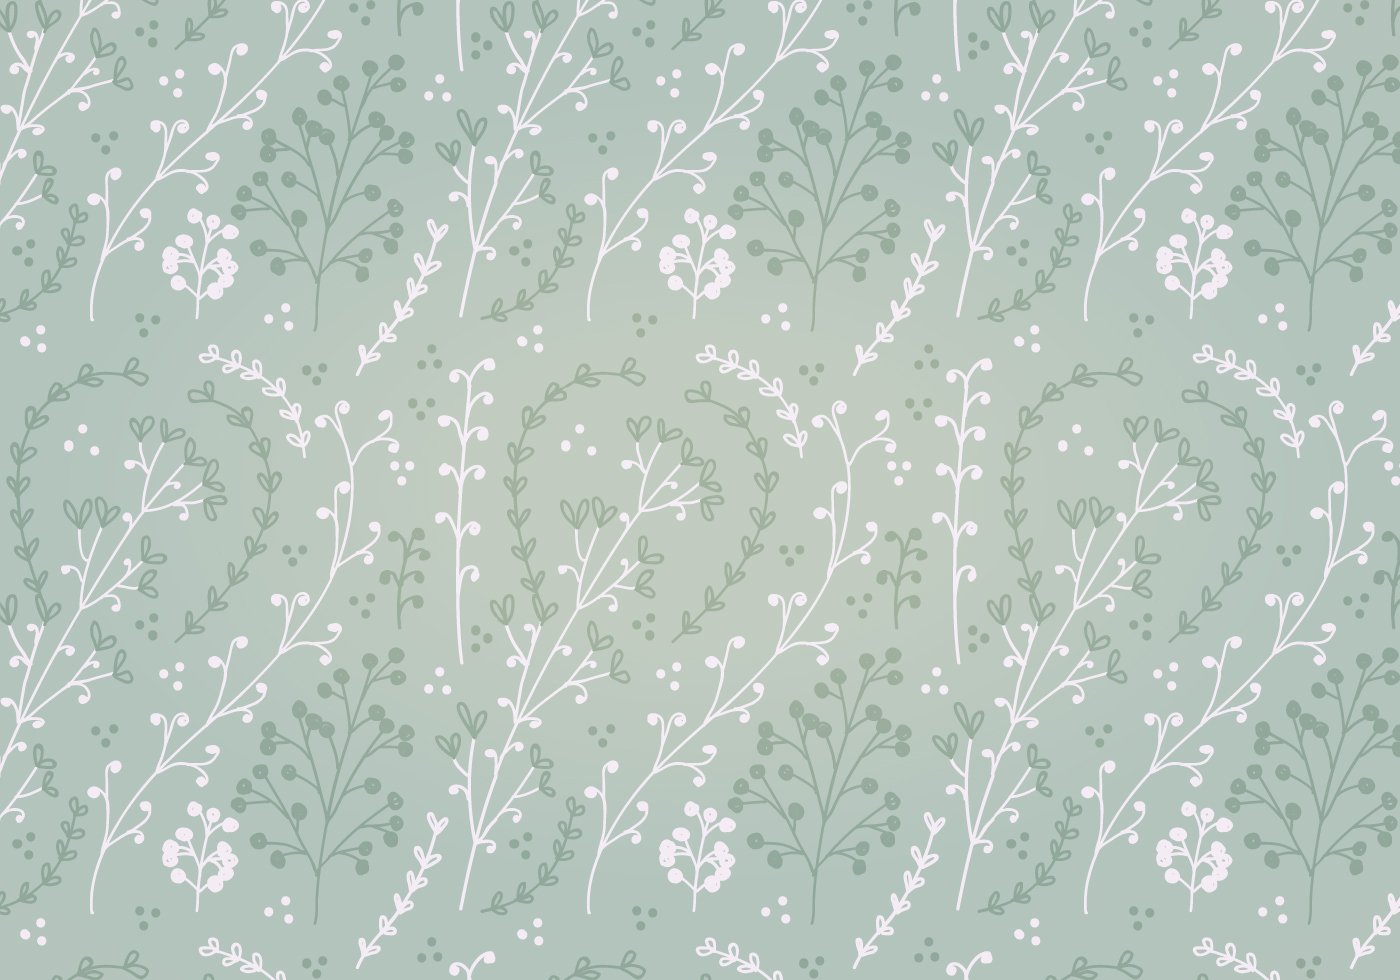 Free Soft Green Flower Vector Pattern Download Free